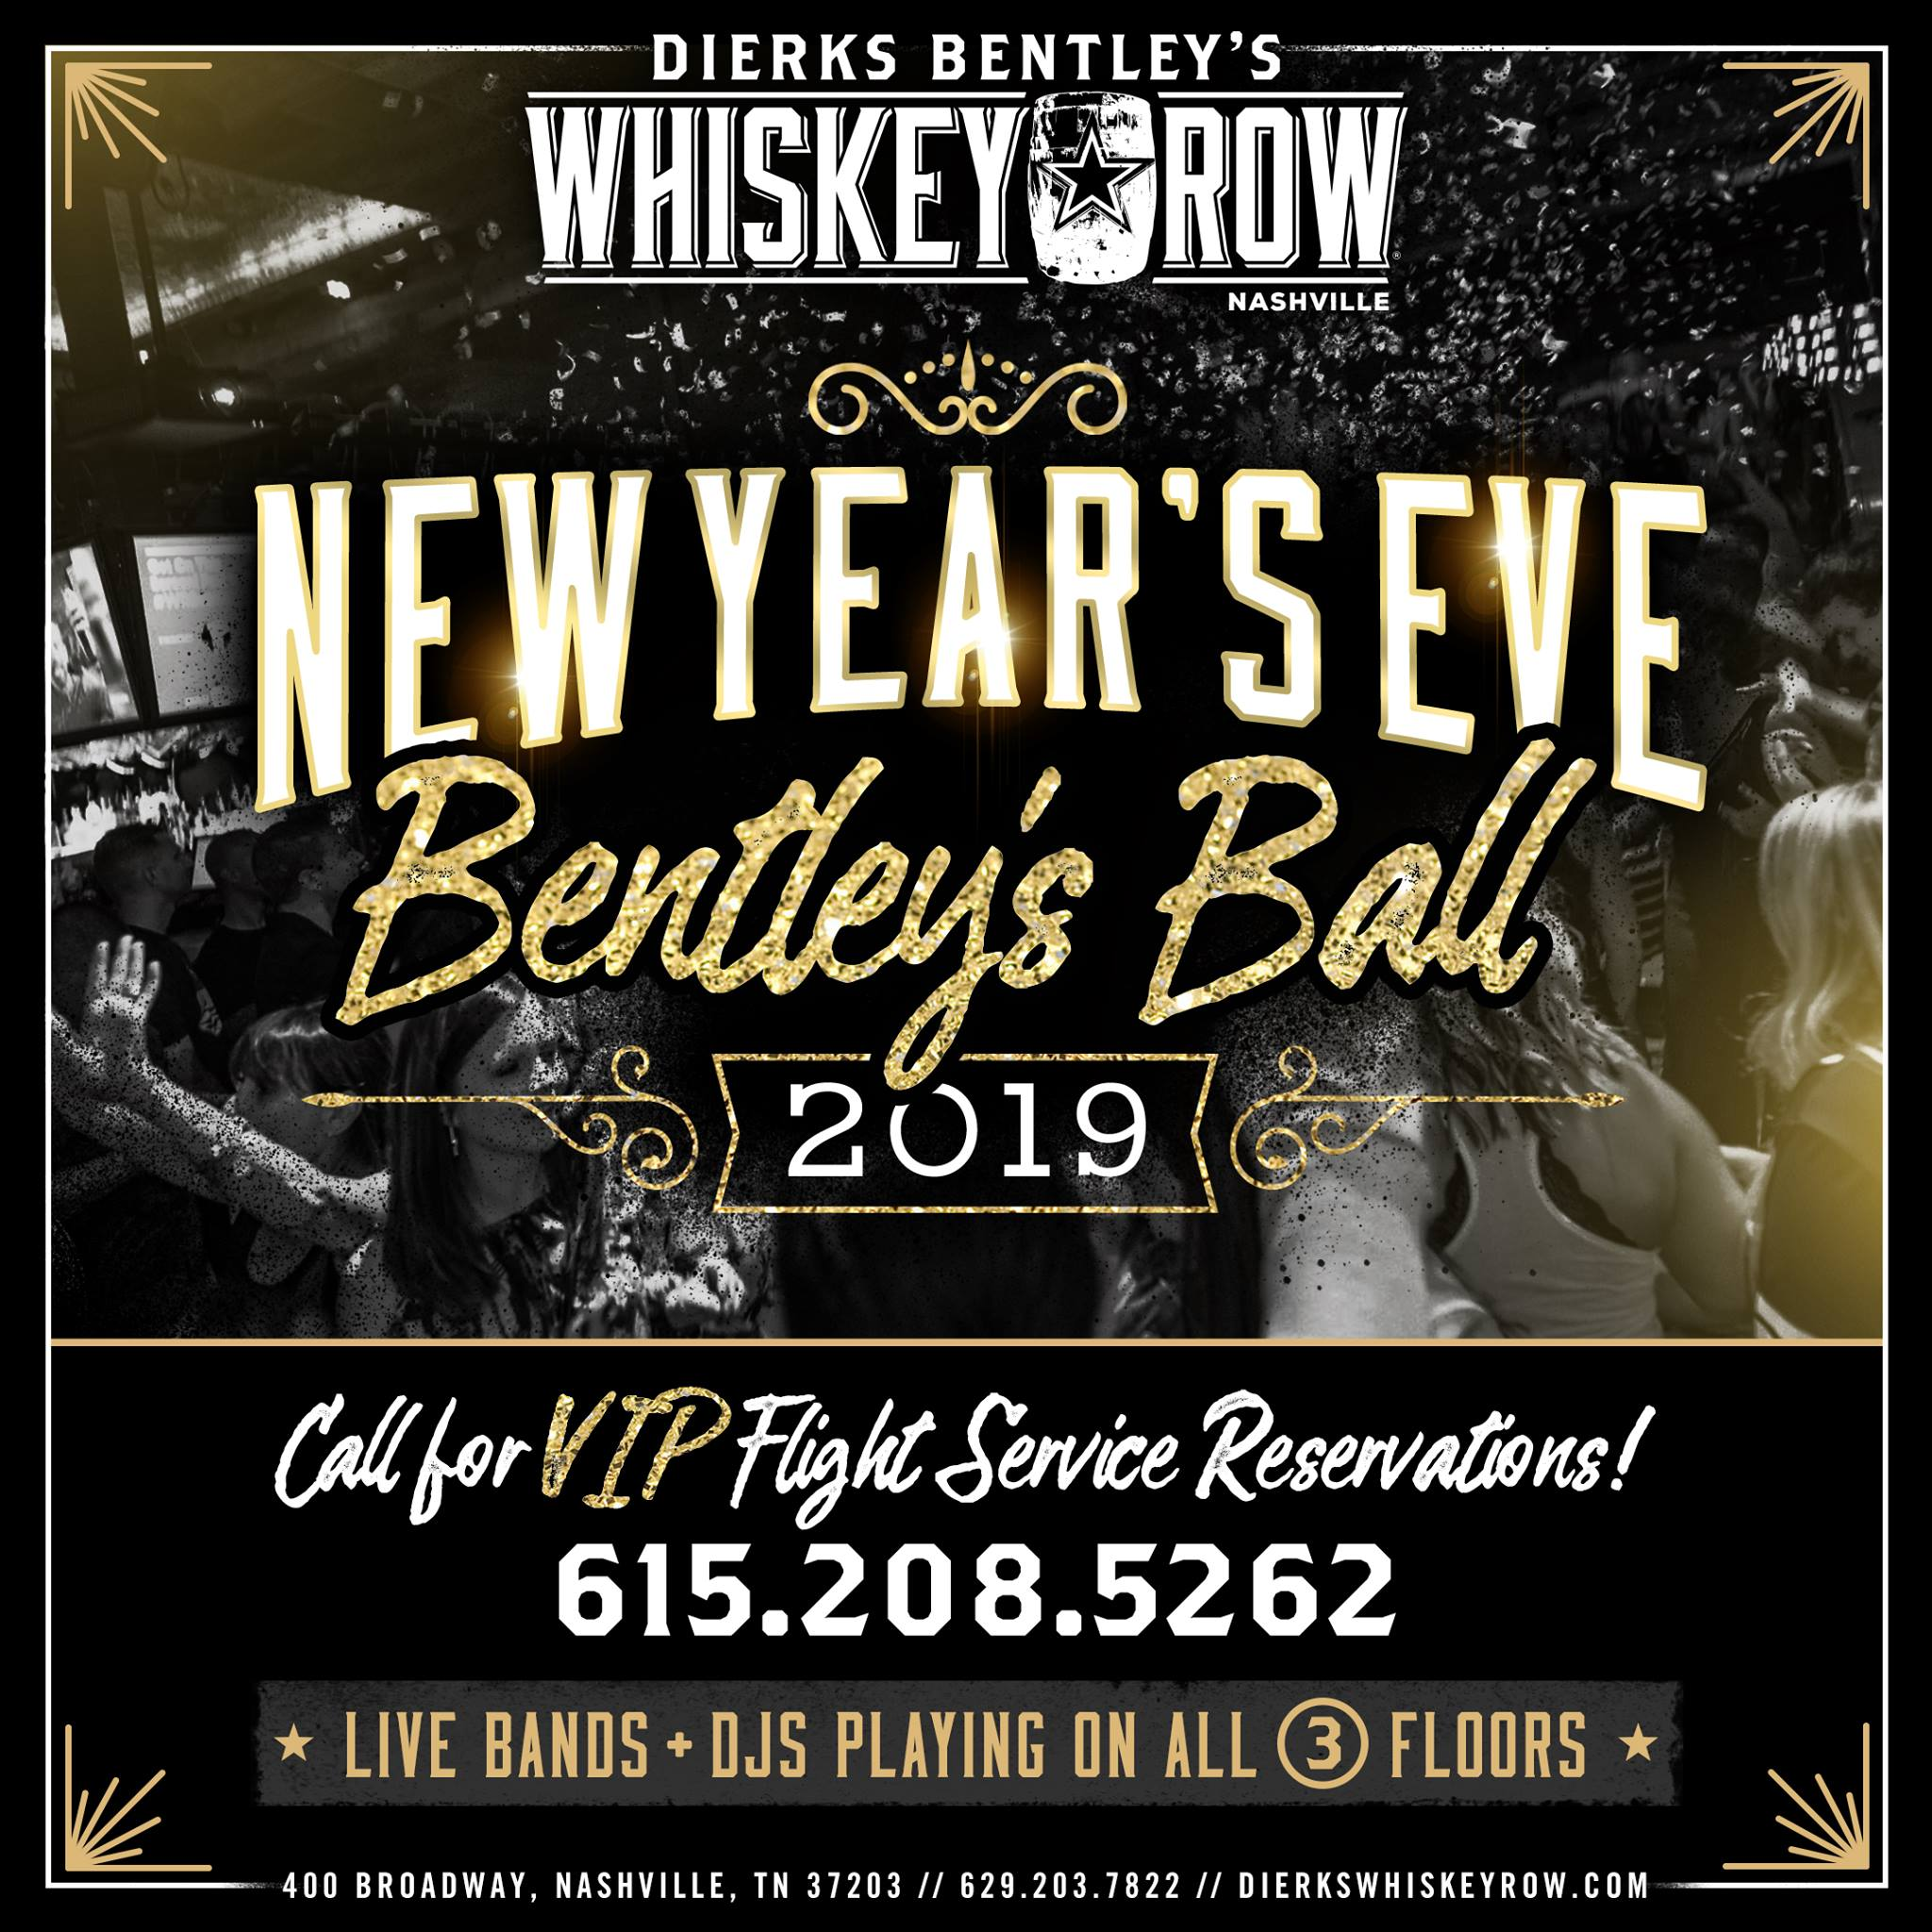 tickets for nye 2019 @ dierks bentley's whiskey row nashville in